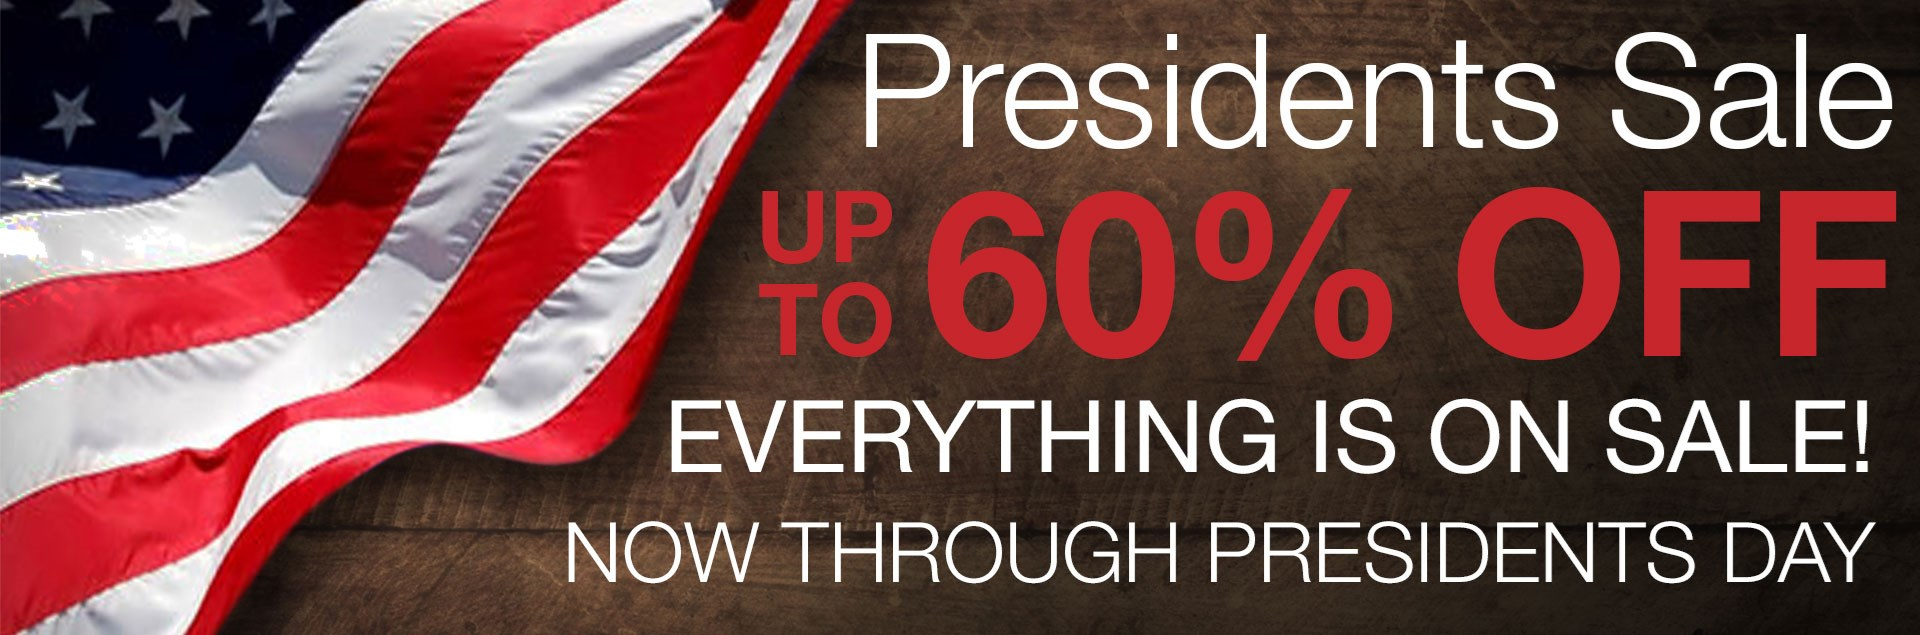 Williams and Kay Presidents Sale